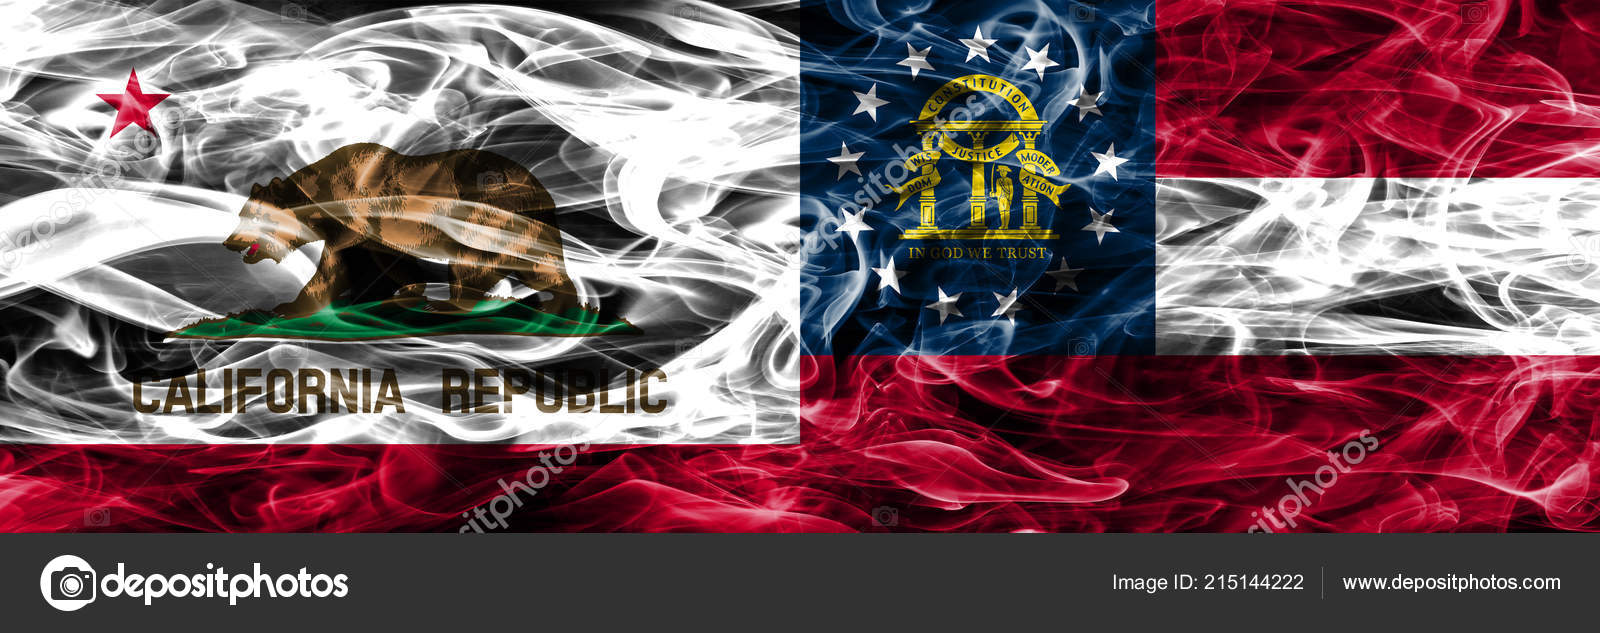 Image result for california vs georgia